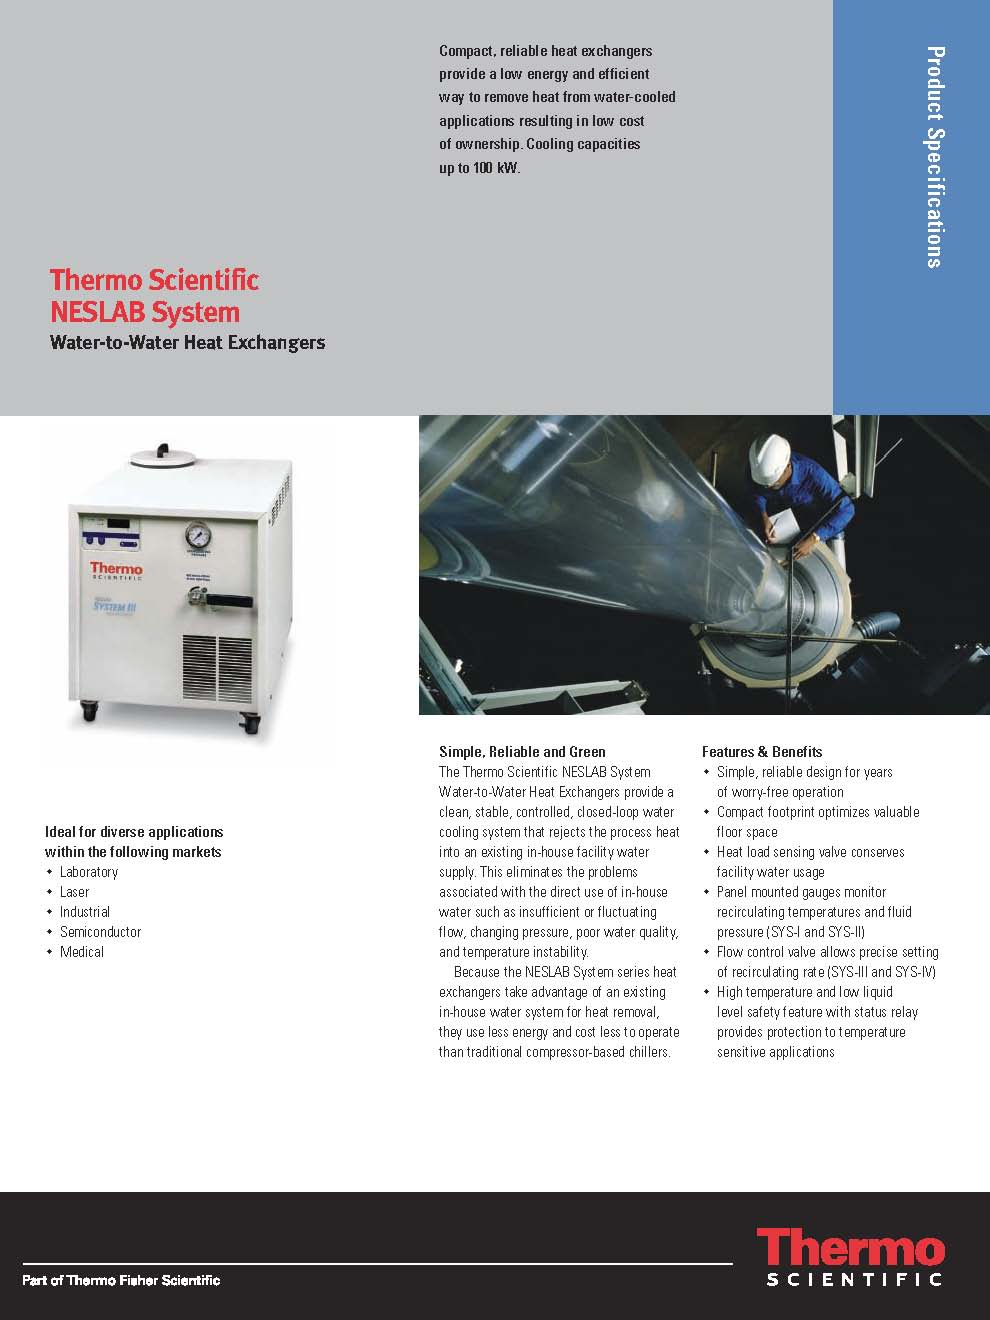 Thermo Scientific NESLAB - Water to Water Heat Exchangers Brochure